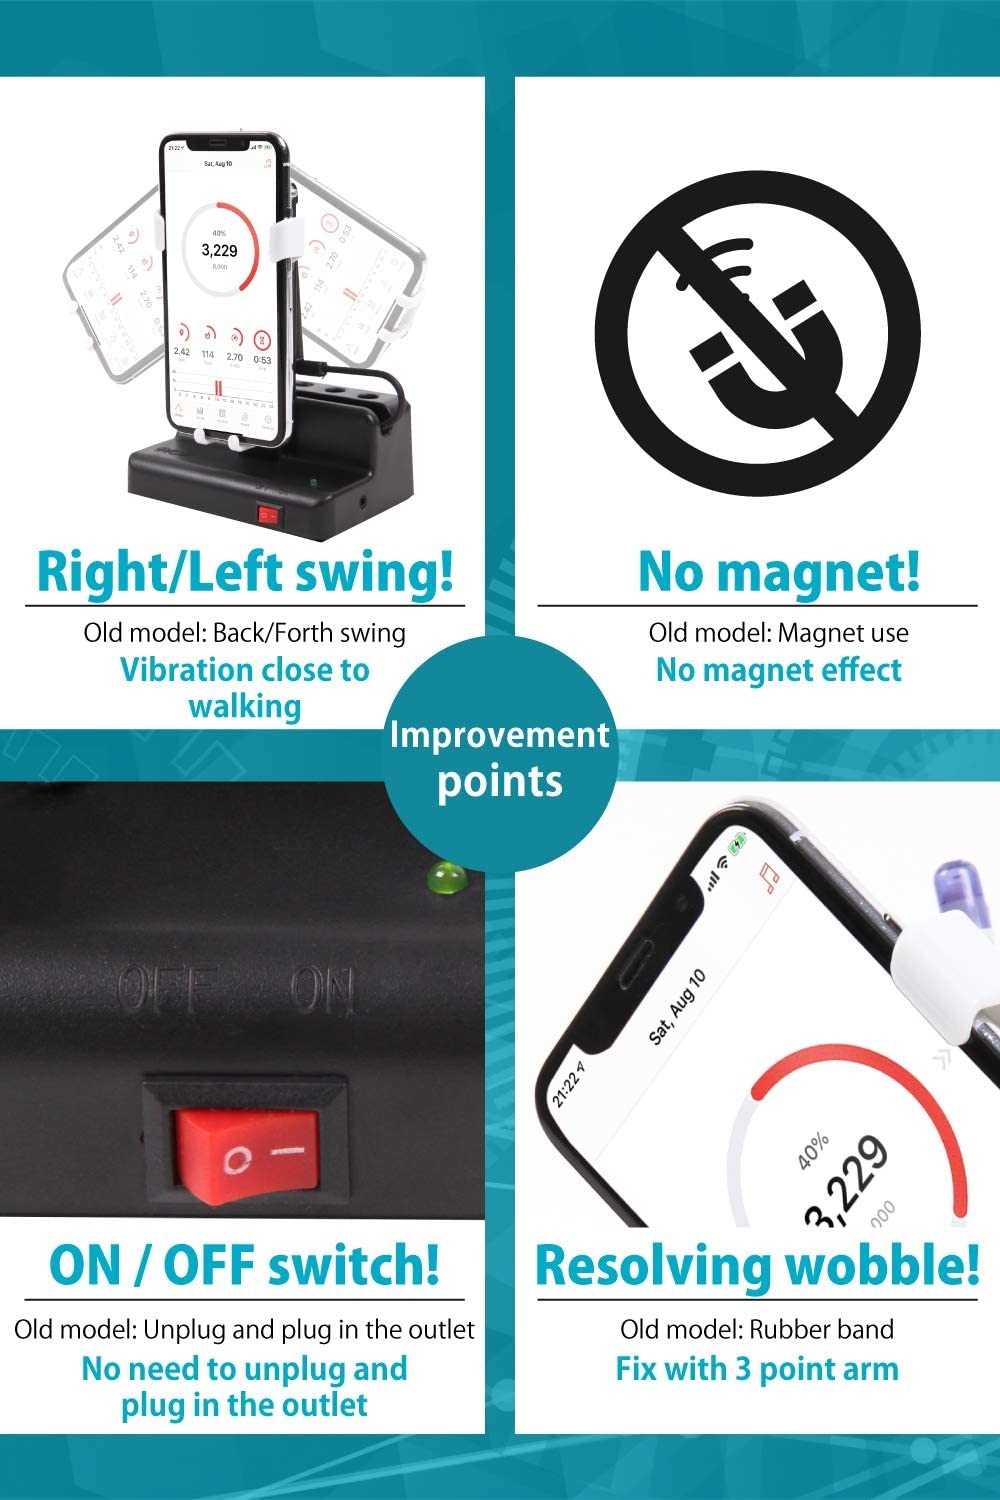 JGP Earn Steps Automatically Mobile Phone Shaker Left//Right Swing with ON//Off Switch and Adjuster No Magnet Manual Included No Rubber Band Required Automatic Egg Hatcher JGP-002